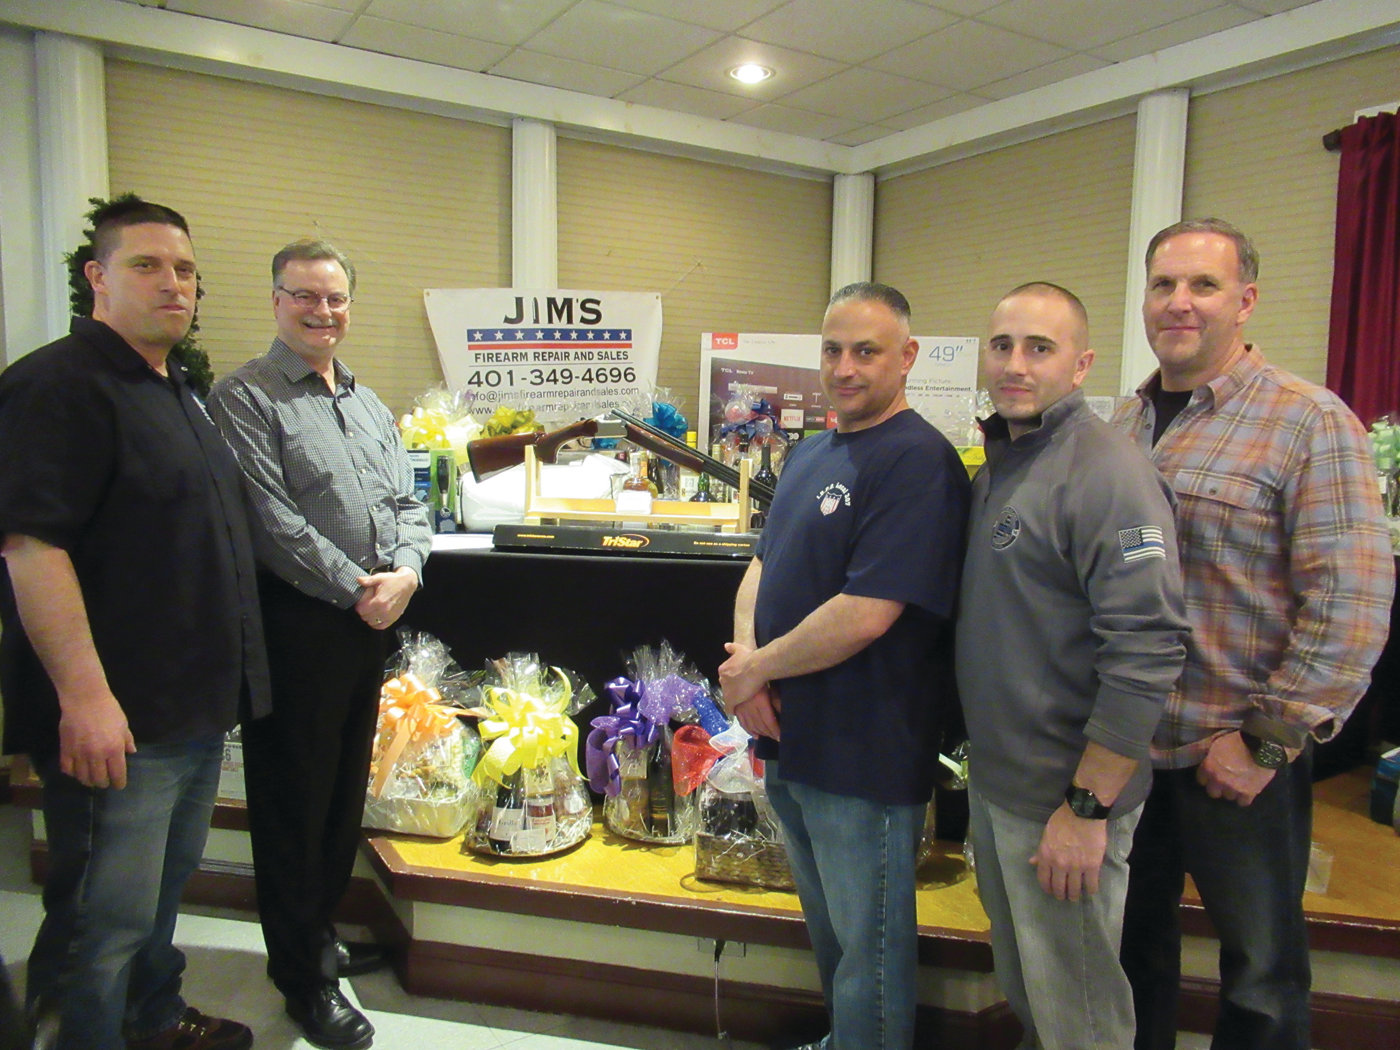 EVENT SPONSOR: Jim Connors, second from left, who owns and operates Jim's Firearms, sponsored the IBPO Local 307 venison dinner. He is joined by organizers Sgt. Joe Scichilone, patrolmen Mike Andreozzi and Arthur Petteruti and Detective Brian Loffredi.